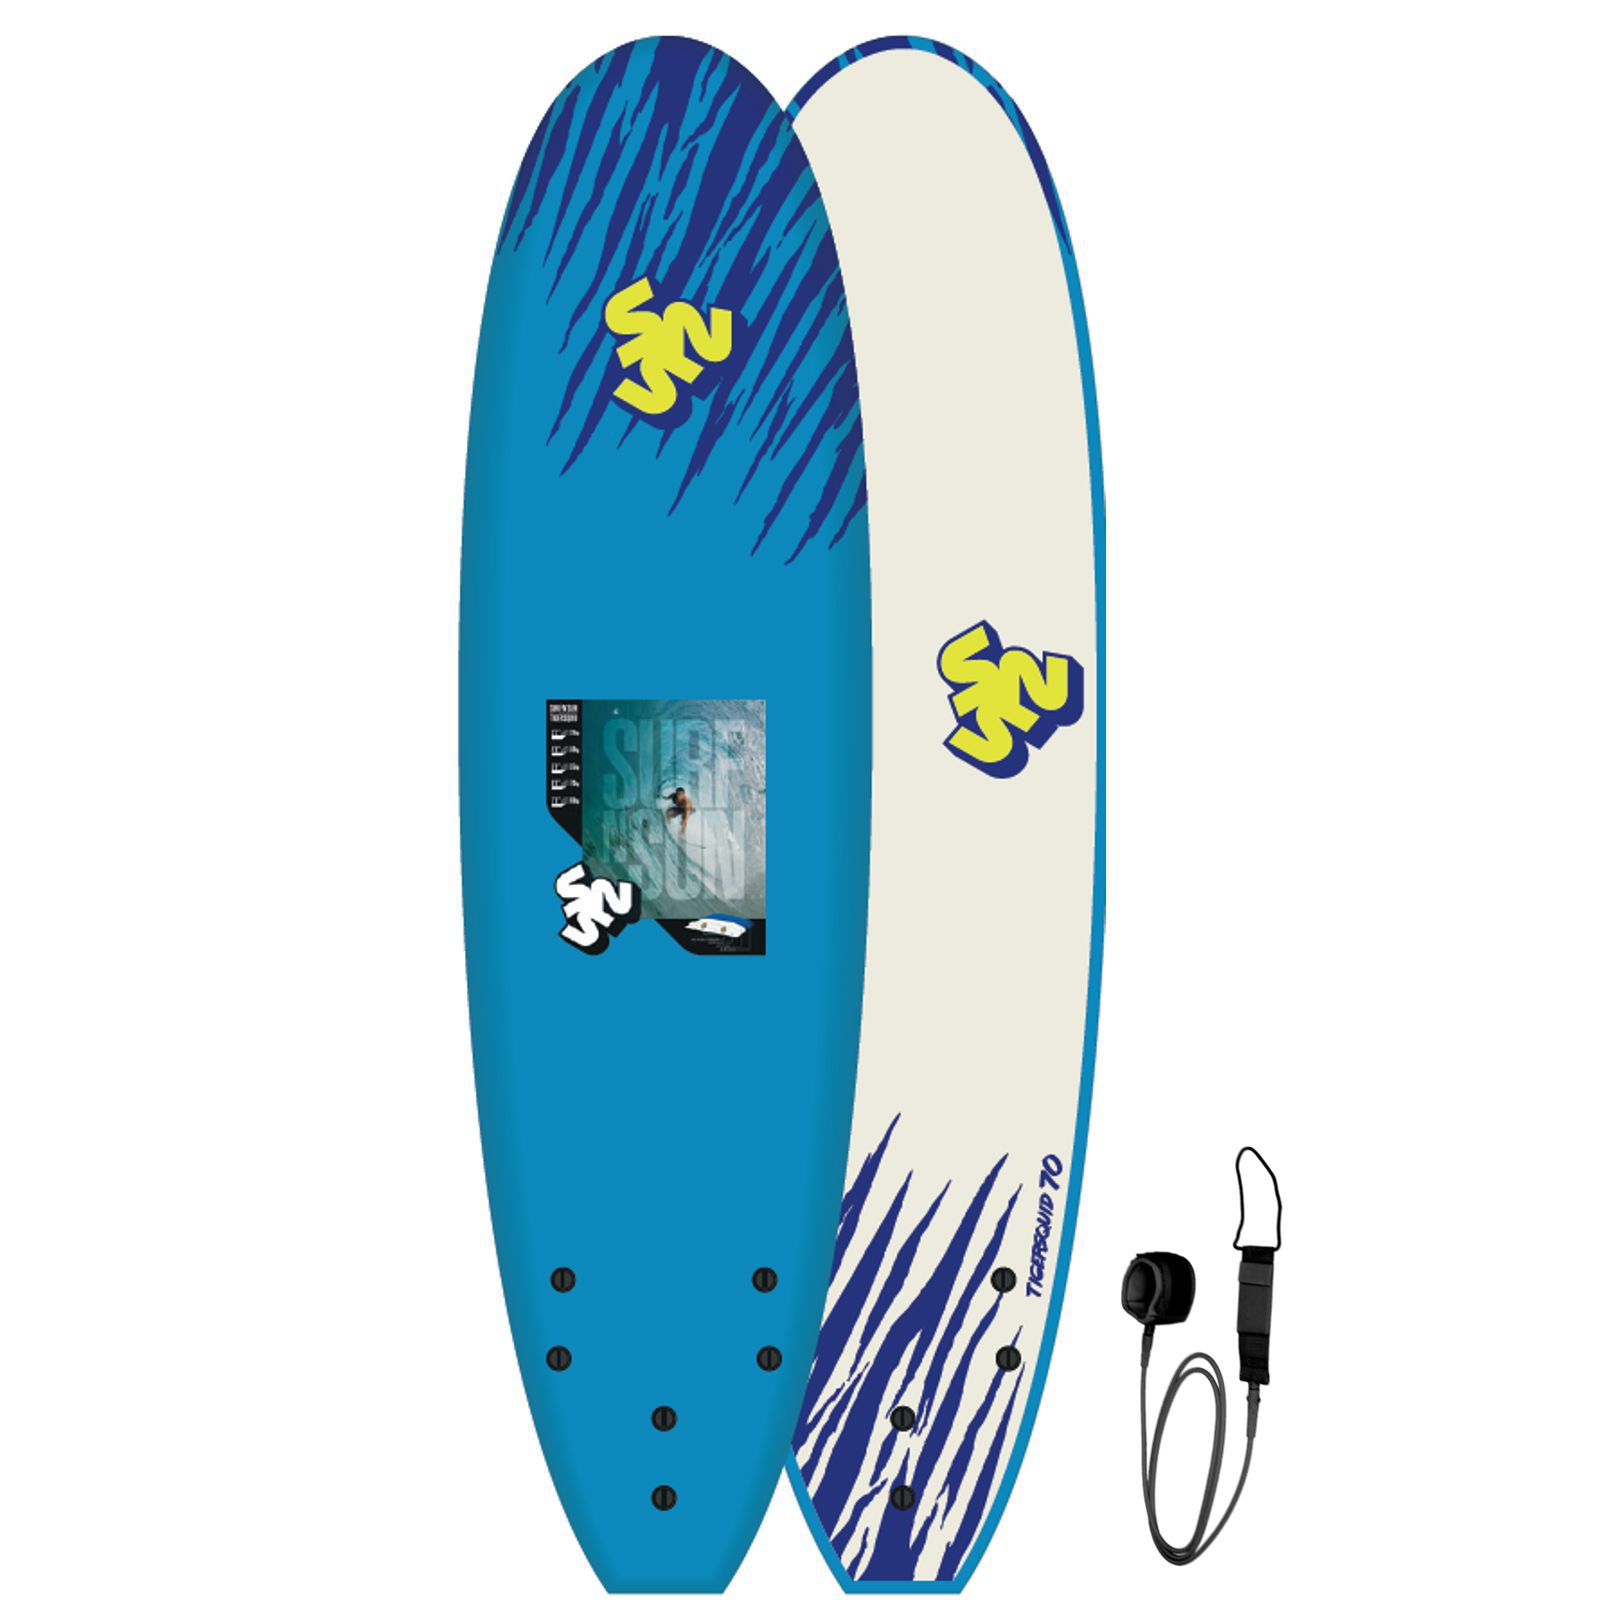 SurfnSun Surfboard Softboard EPS Tigersquid 7.0